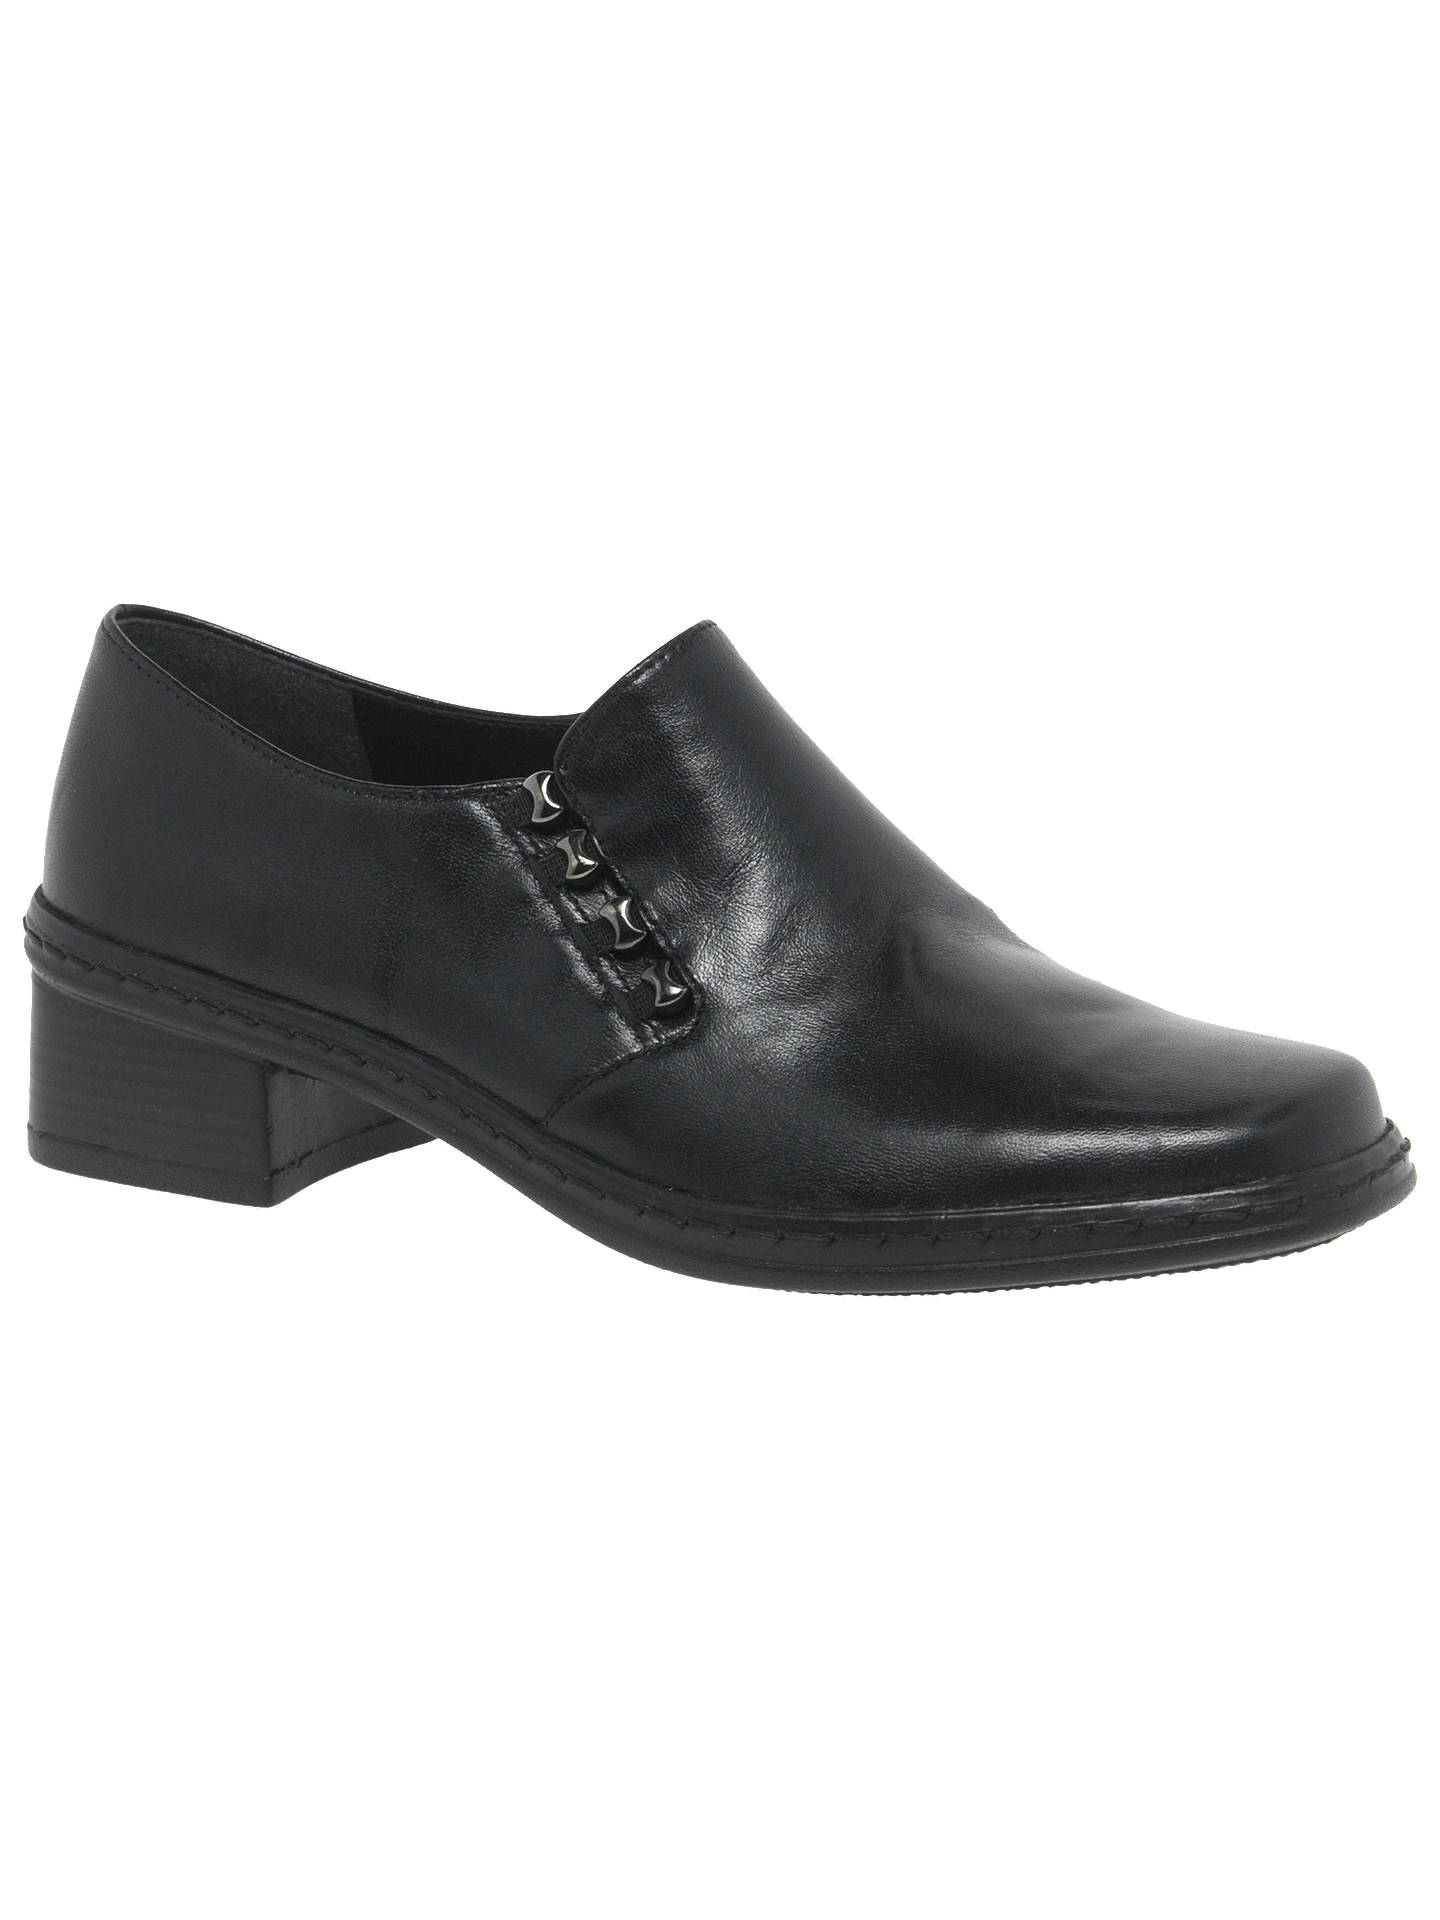 15a37fac7658f Buy Gabor Hertha Low Block Heel Leather Loafers, Black Leather, 3 Online at  johnlewis ...